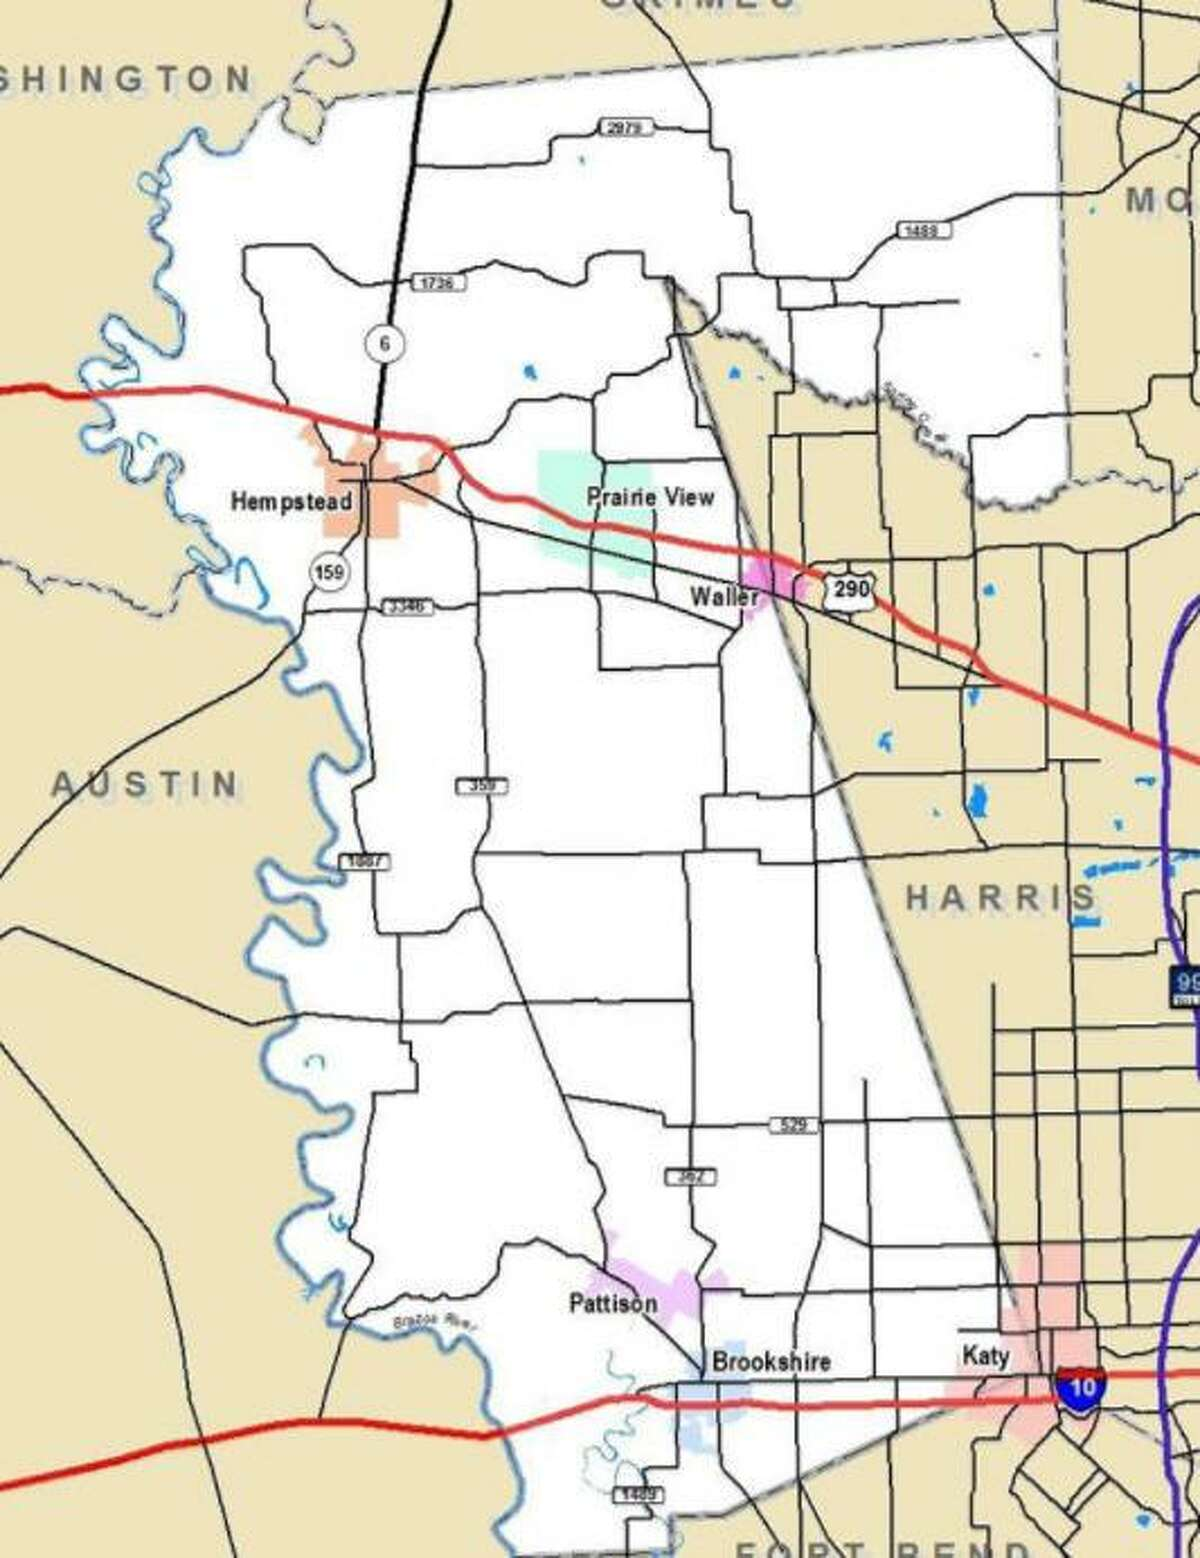 The Houston-Galveston Area Council is partnering with Waller County to create a transportation plan for the county.